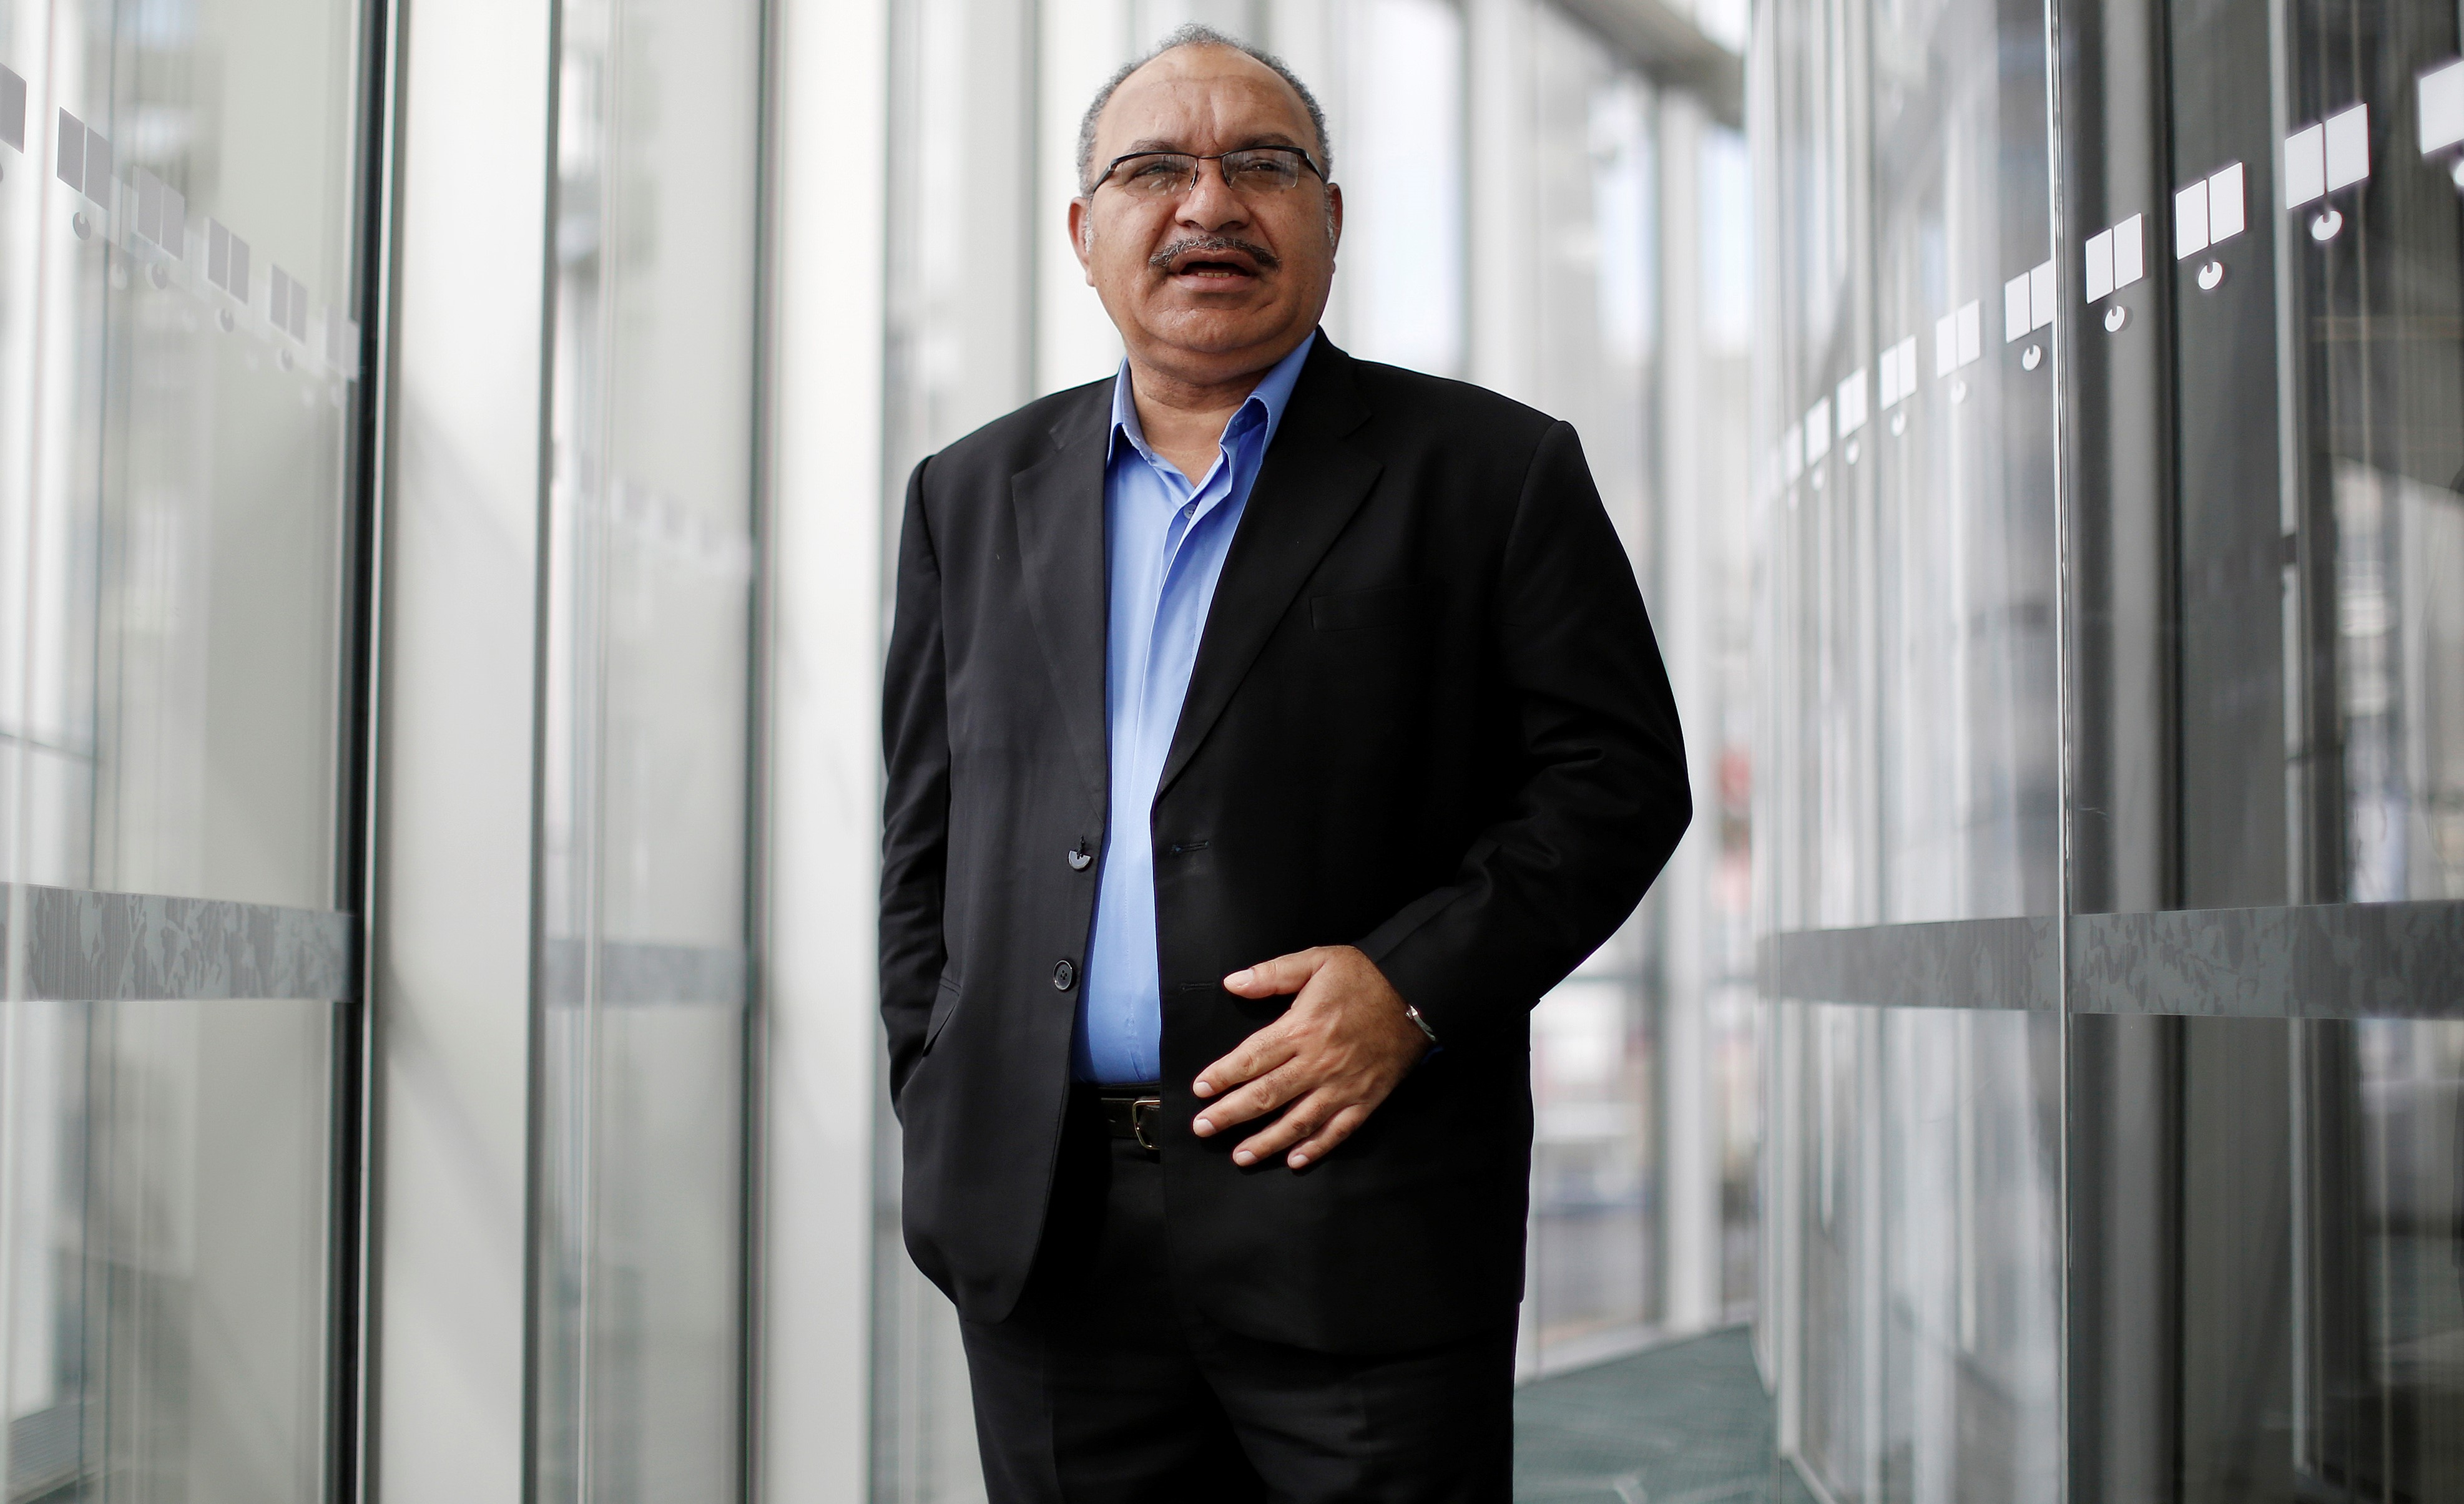 PNG's most recent PM Peter O'Neill has retained his seat in the recent election and his party is forecast to be called on to form government. (Photo: David Moir/ via Getty Images)